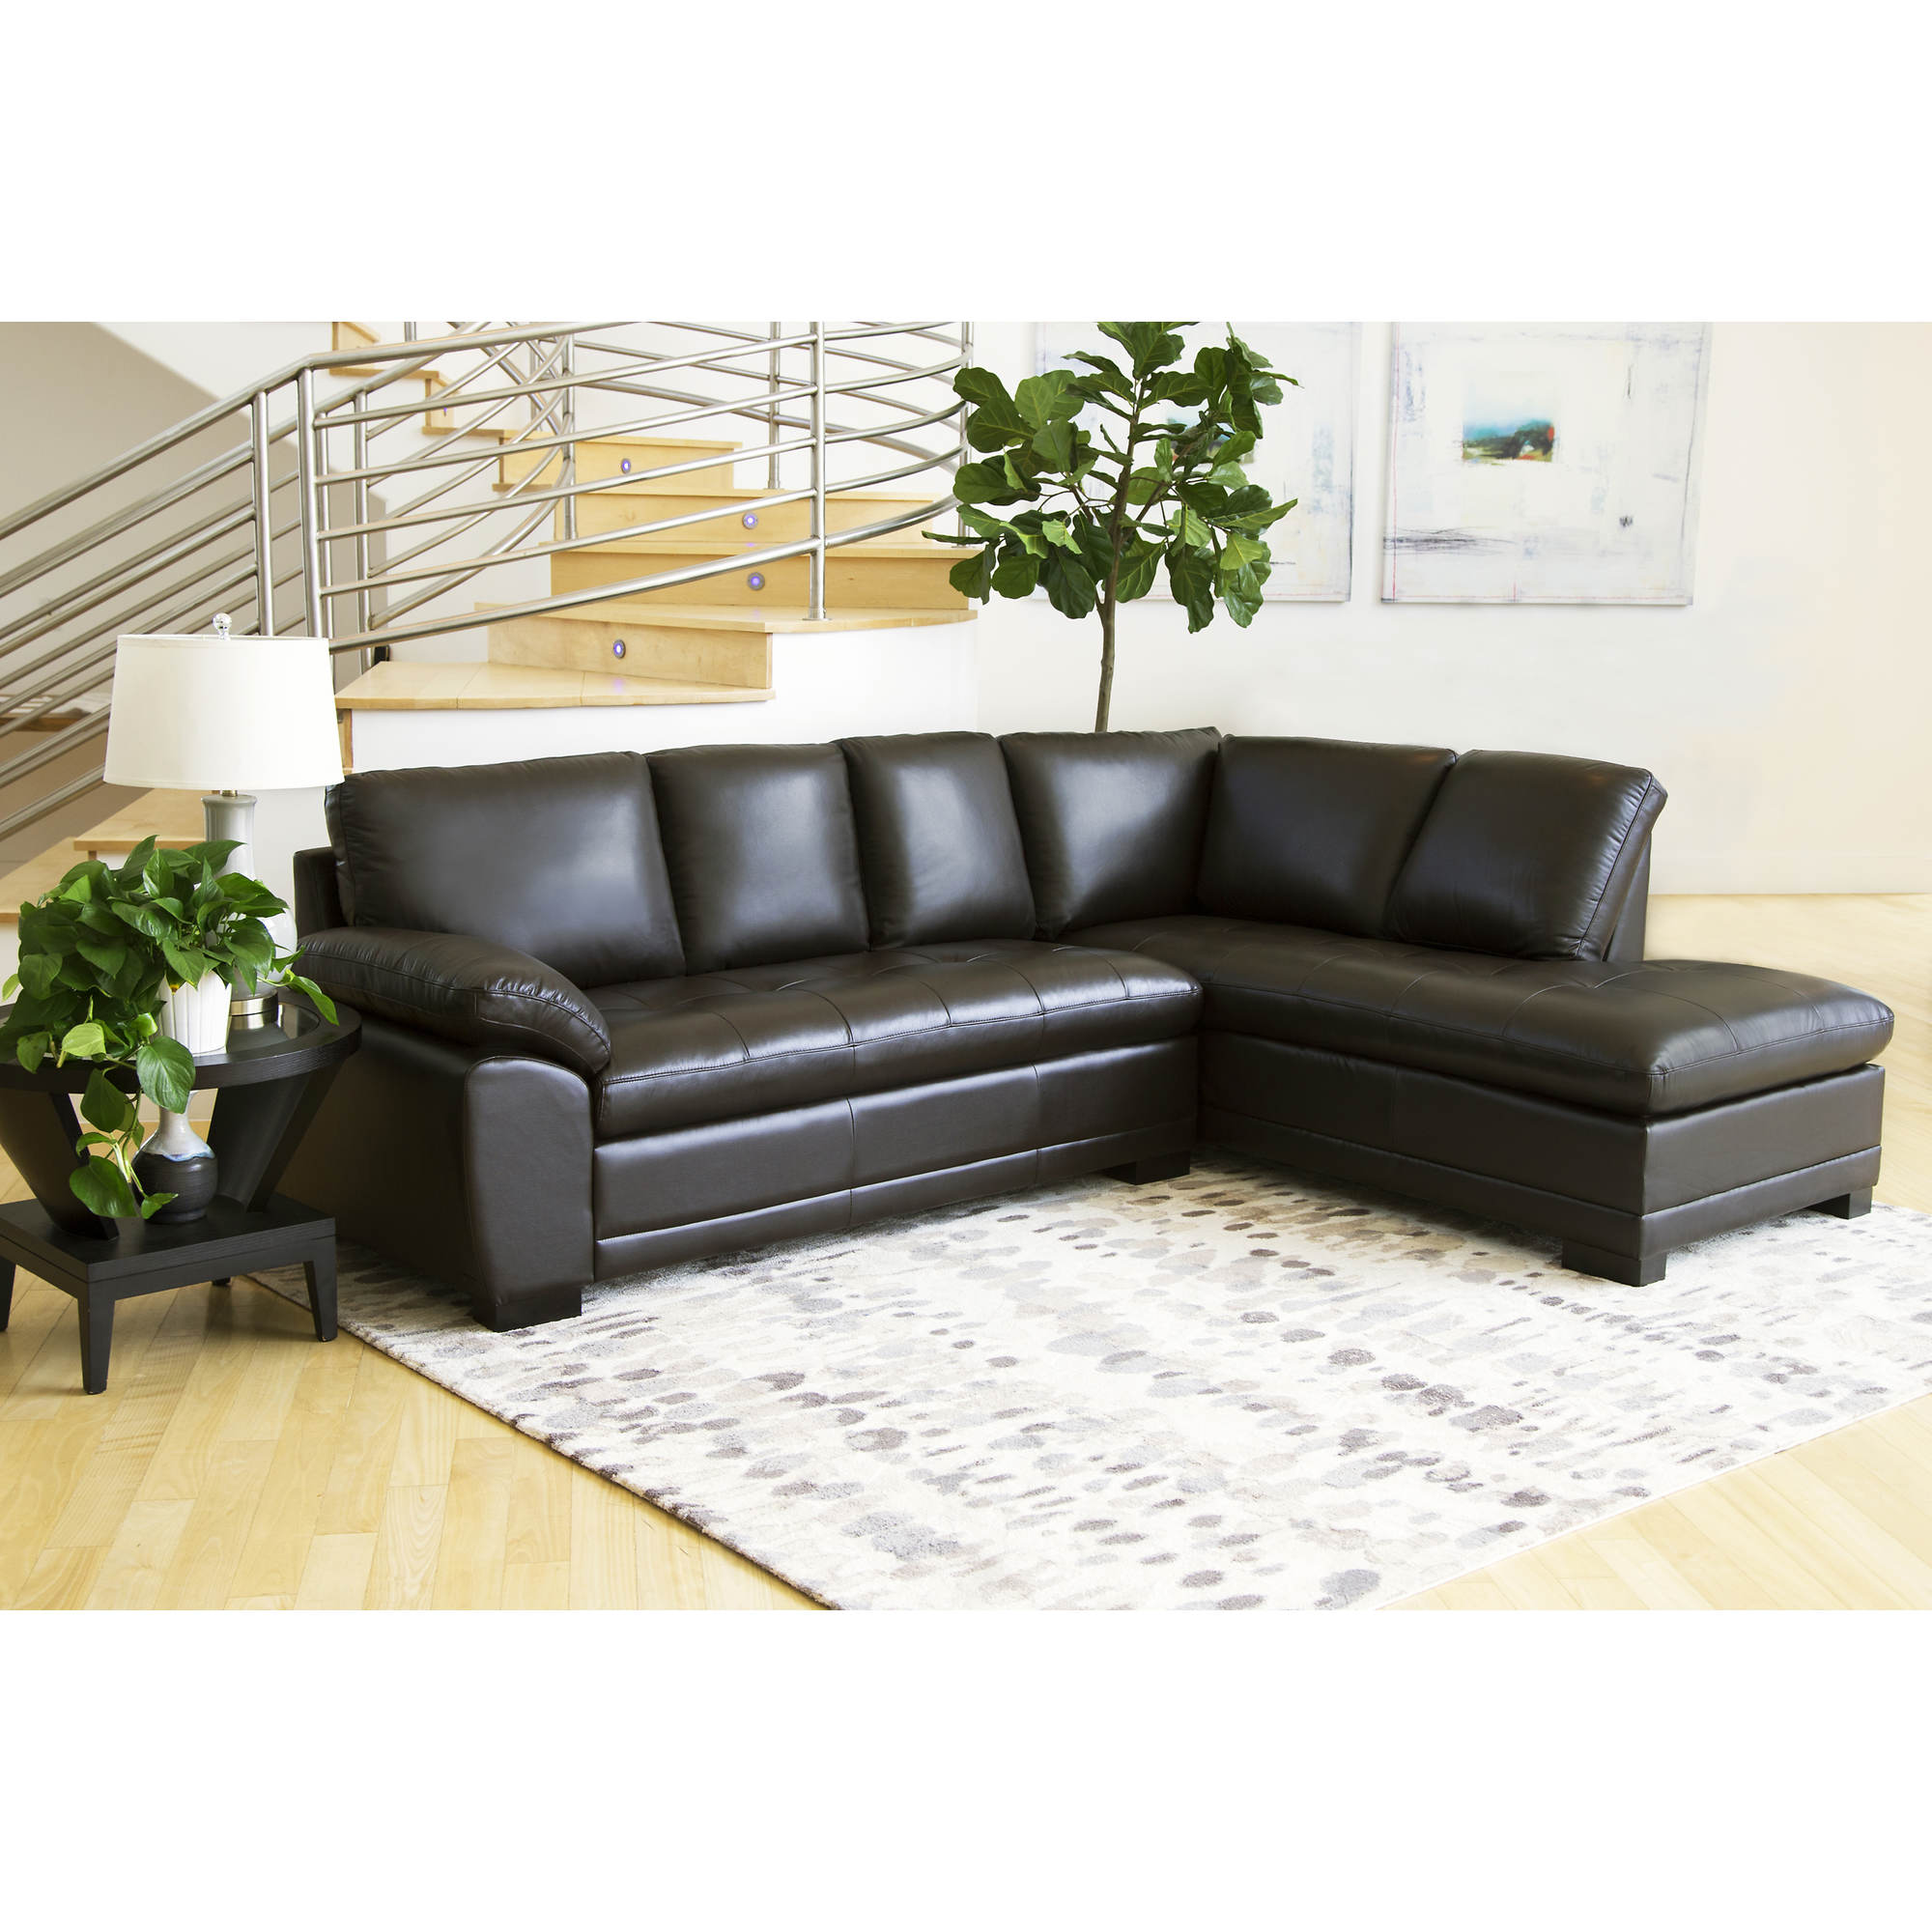 brown clearance grain hd home sofa waverly premium amusing and decor reclining for your saleamusing textiles top meadows ottoman furniture sectional leather curved